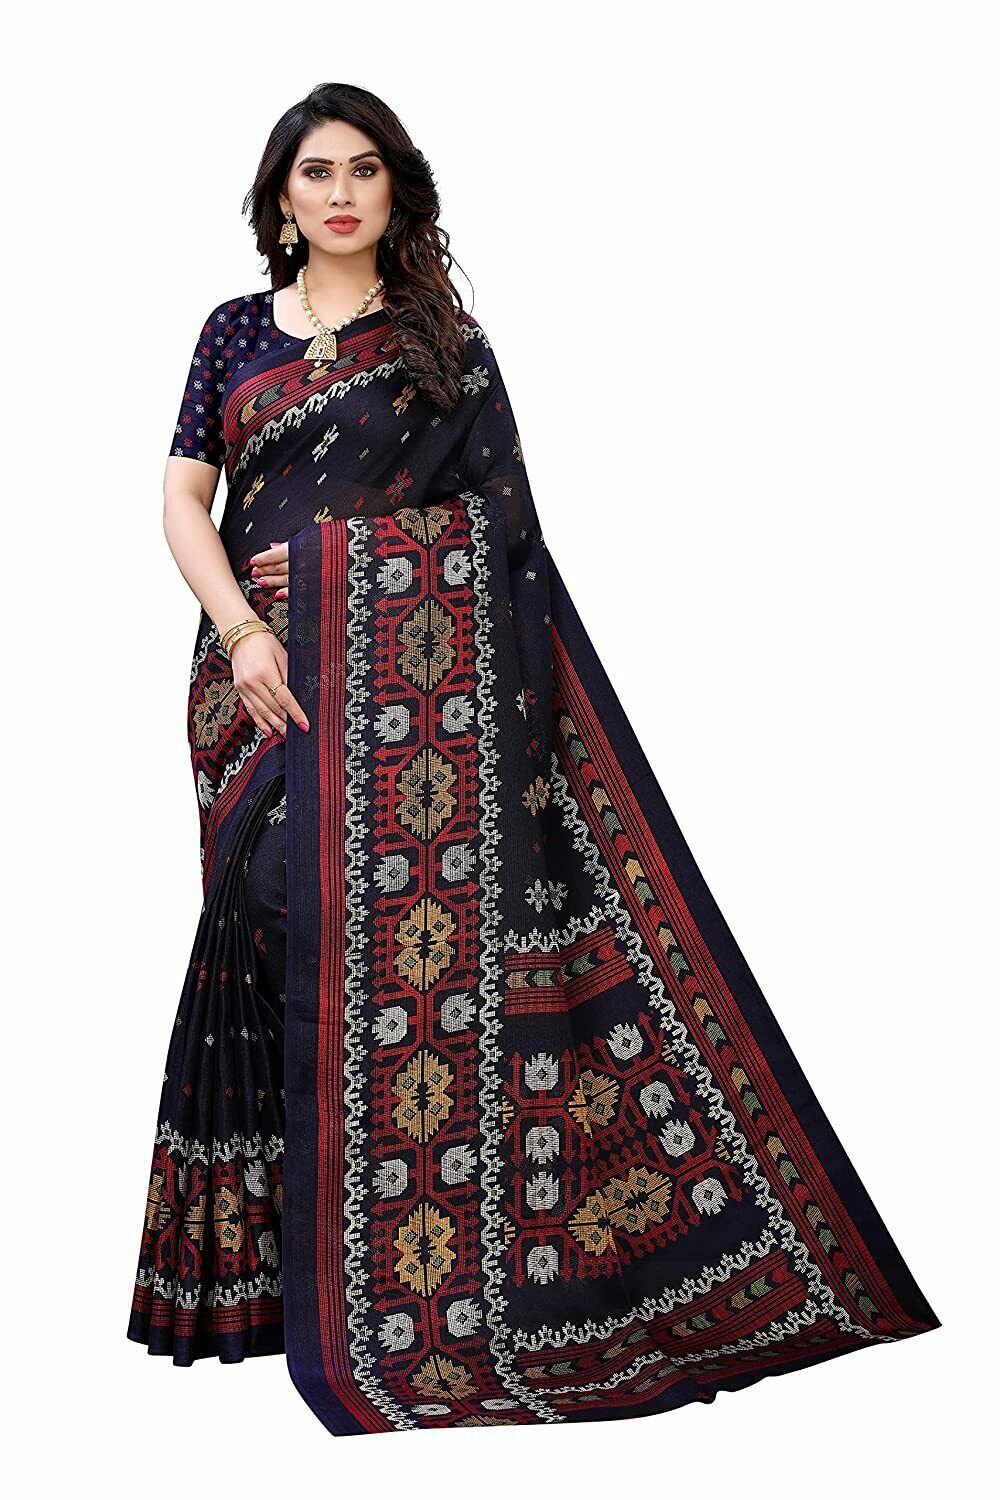 Women's Jute Printed Saree With Unstitched Blouse - Free Shipping